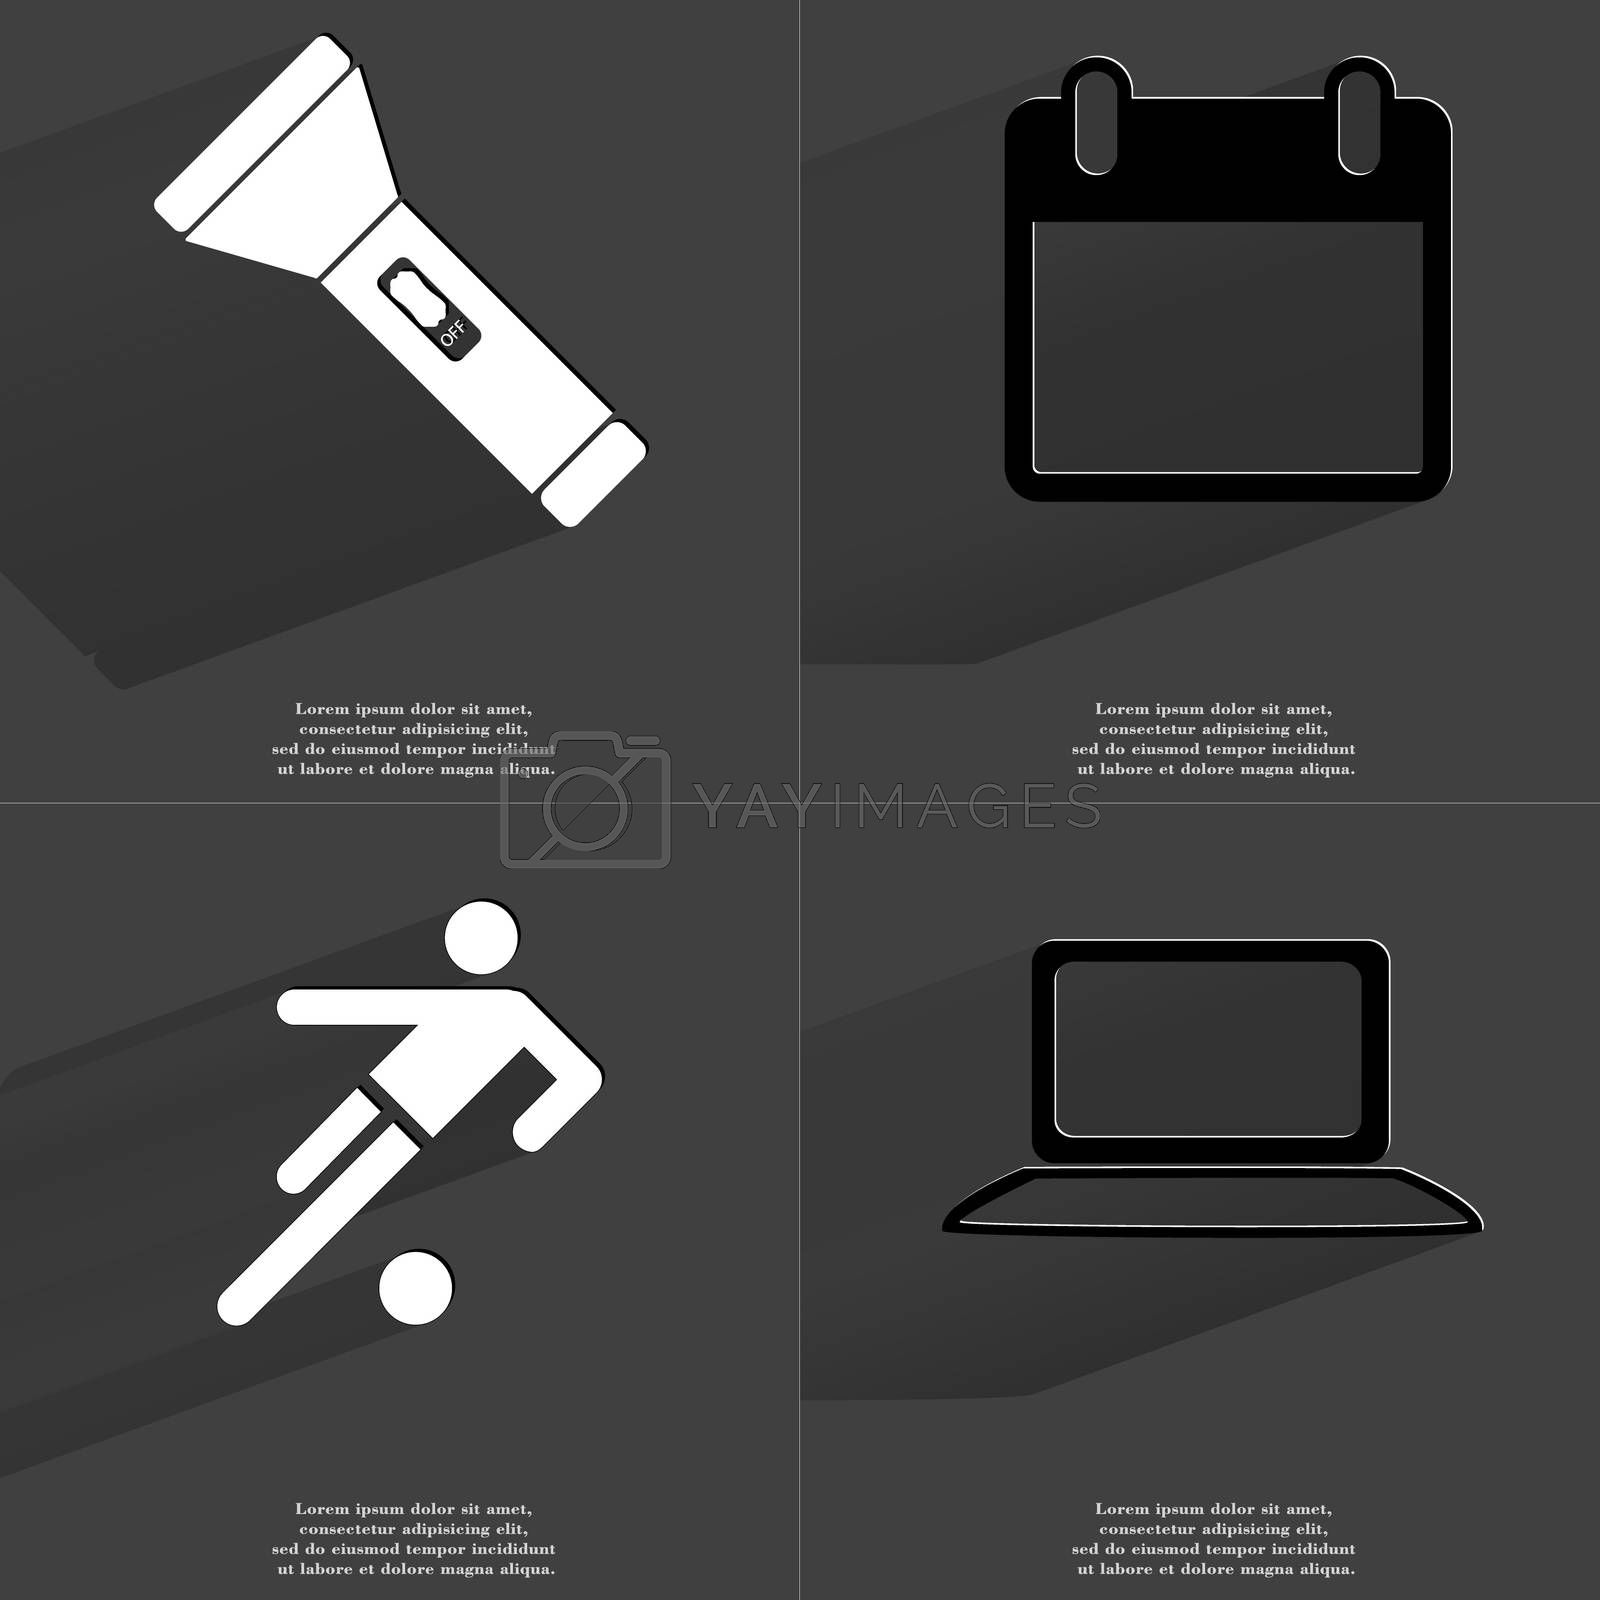 Royalty free image of Flashlight, Calendar, Silhouette of a football player, Laptop. Symbols with long shadow. Flat design by serhii_lohvyniuk